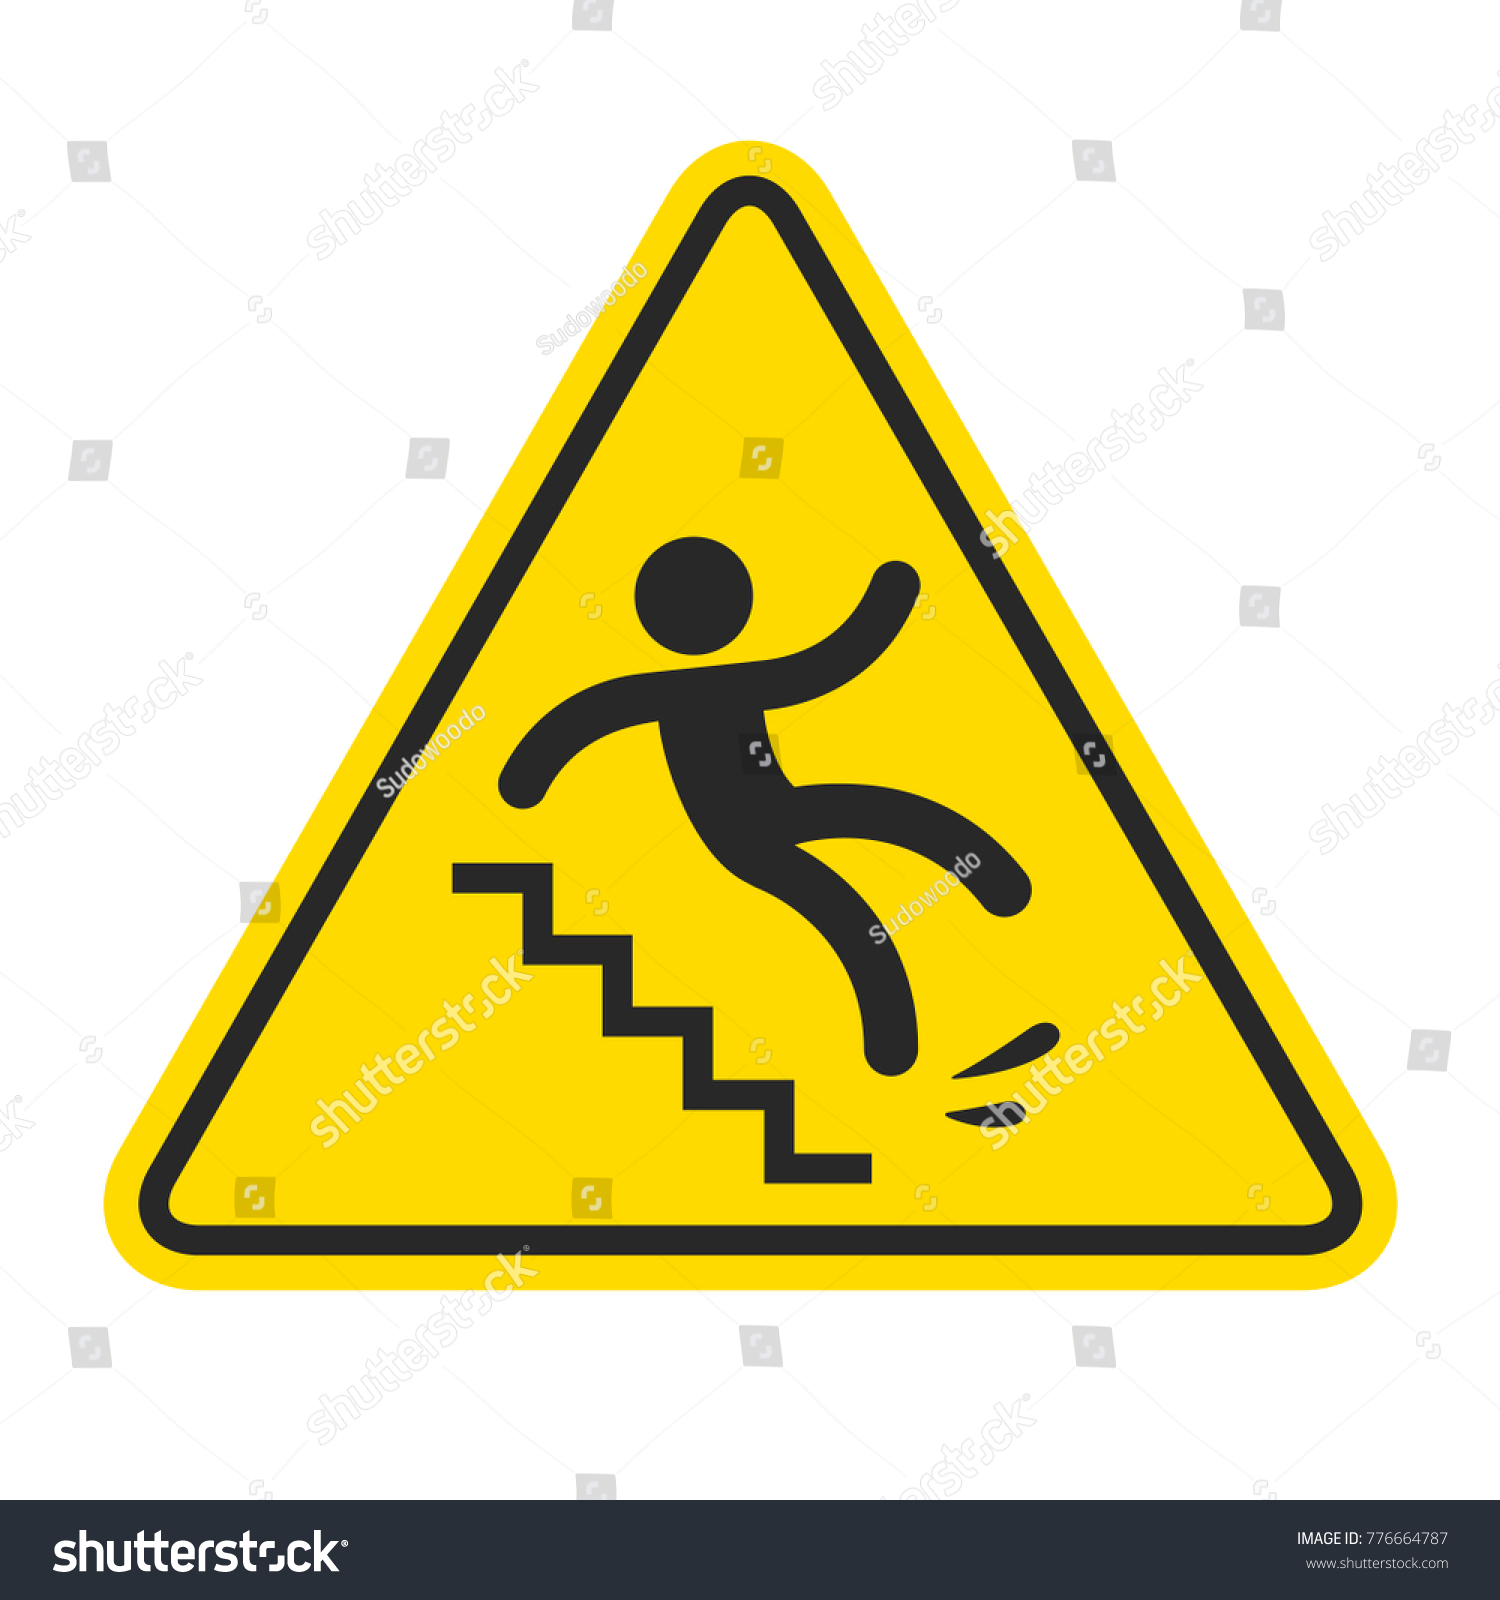 Slippery Stairs Warning Yellow Triangle Symbol Stock Illustration